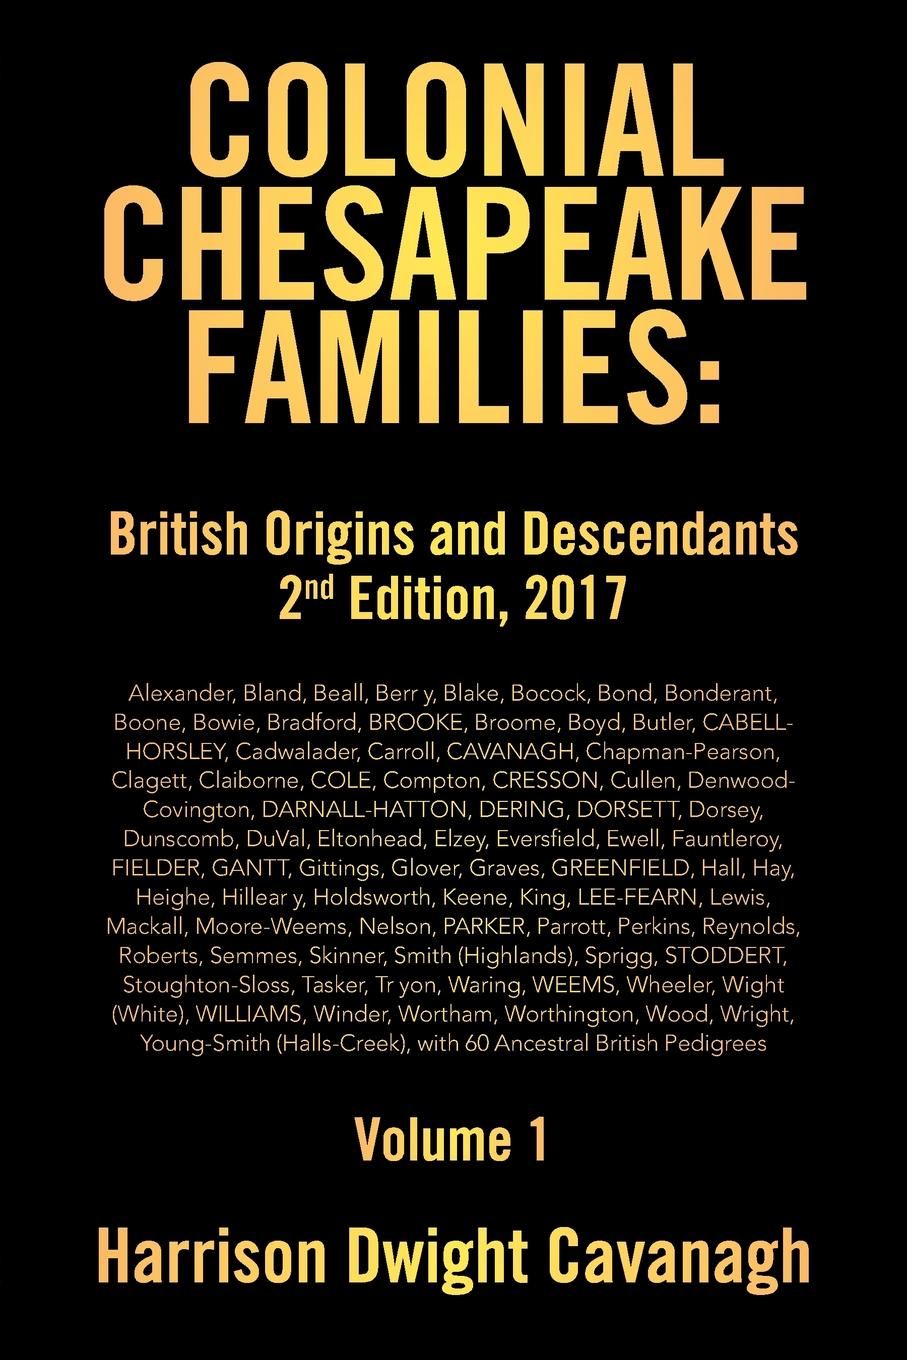 Harrison Dwight Cavanagh Colonial Chesapeake Families. British Origins and Descendants 2nd Edition: Volume 1 stella pickett hardy colonial families of the southern states of america a history and genealogy of colonial families who settled in the colonies prior to the revolution